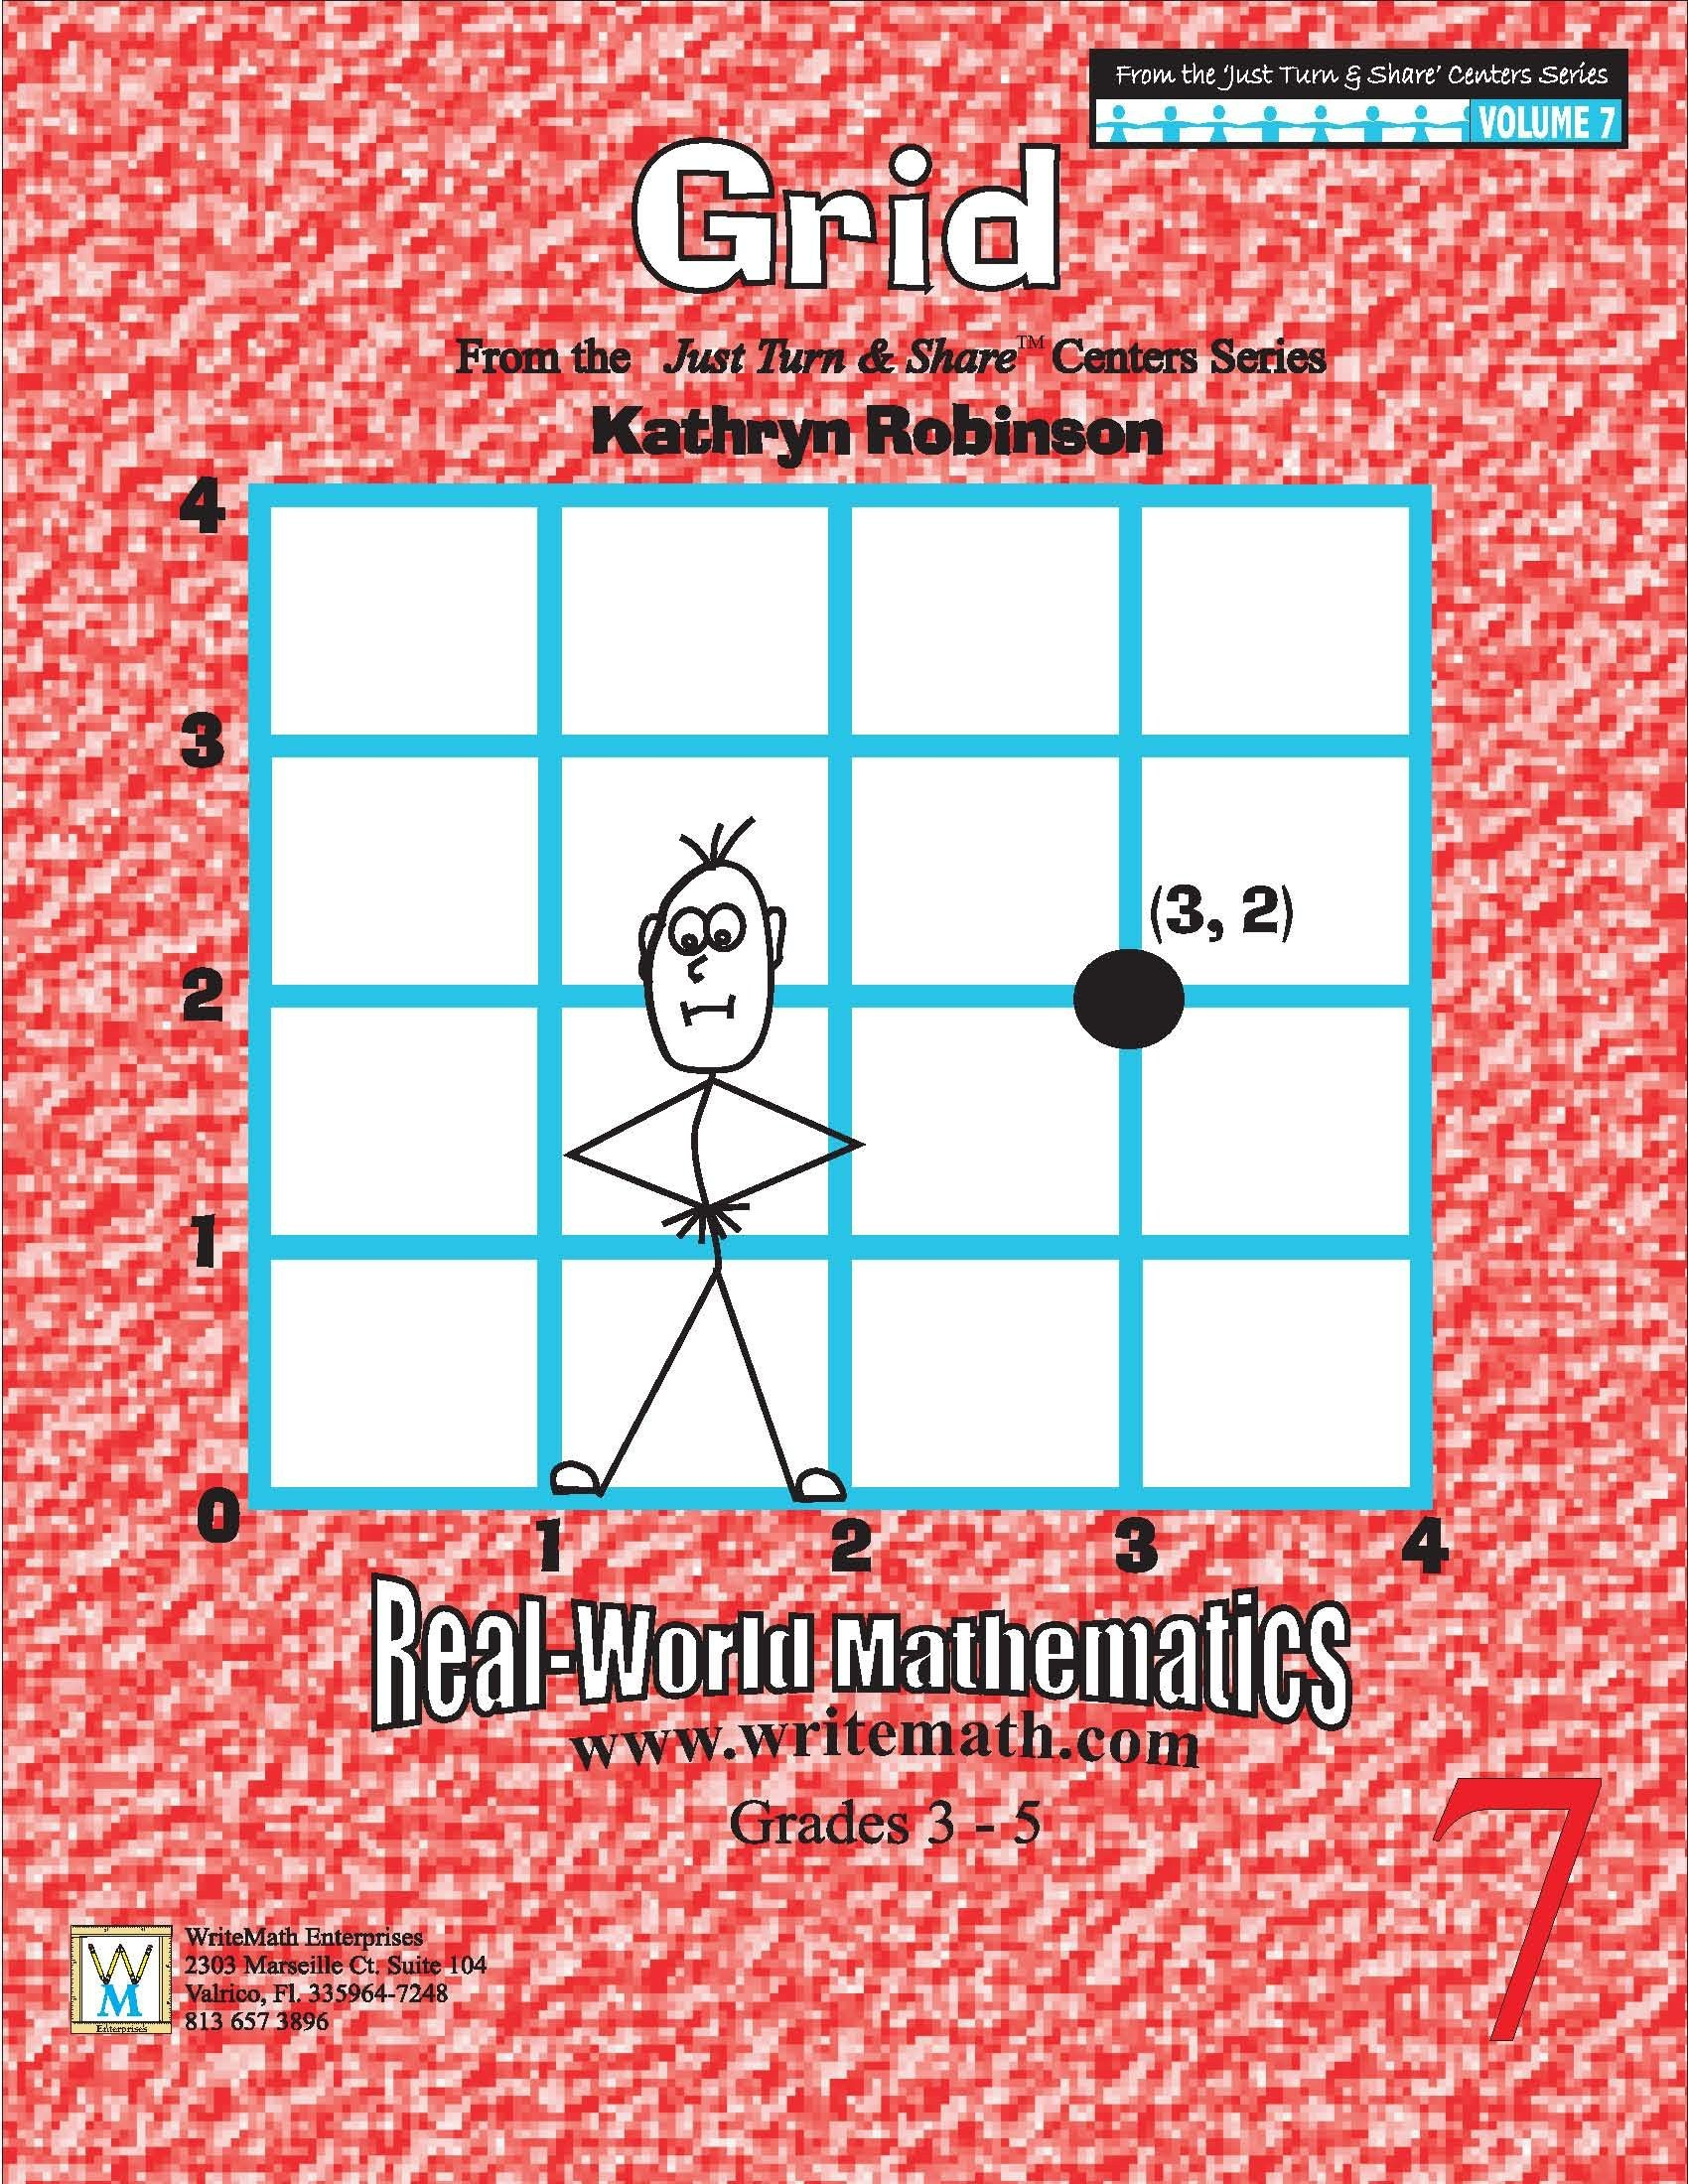 5th Grade Coordinate Grid Worksheets Coordinate Grid Worksheets 3rd 4th 5th Grade Math Just